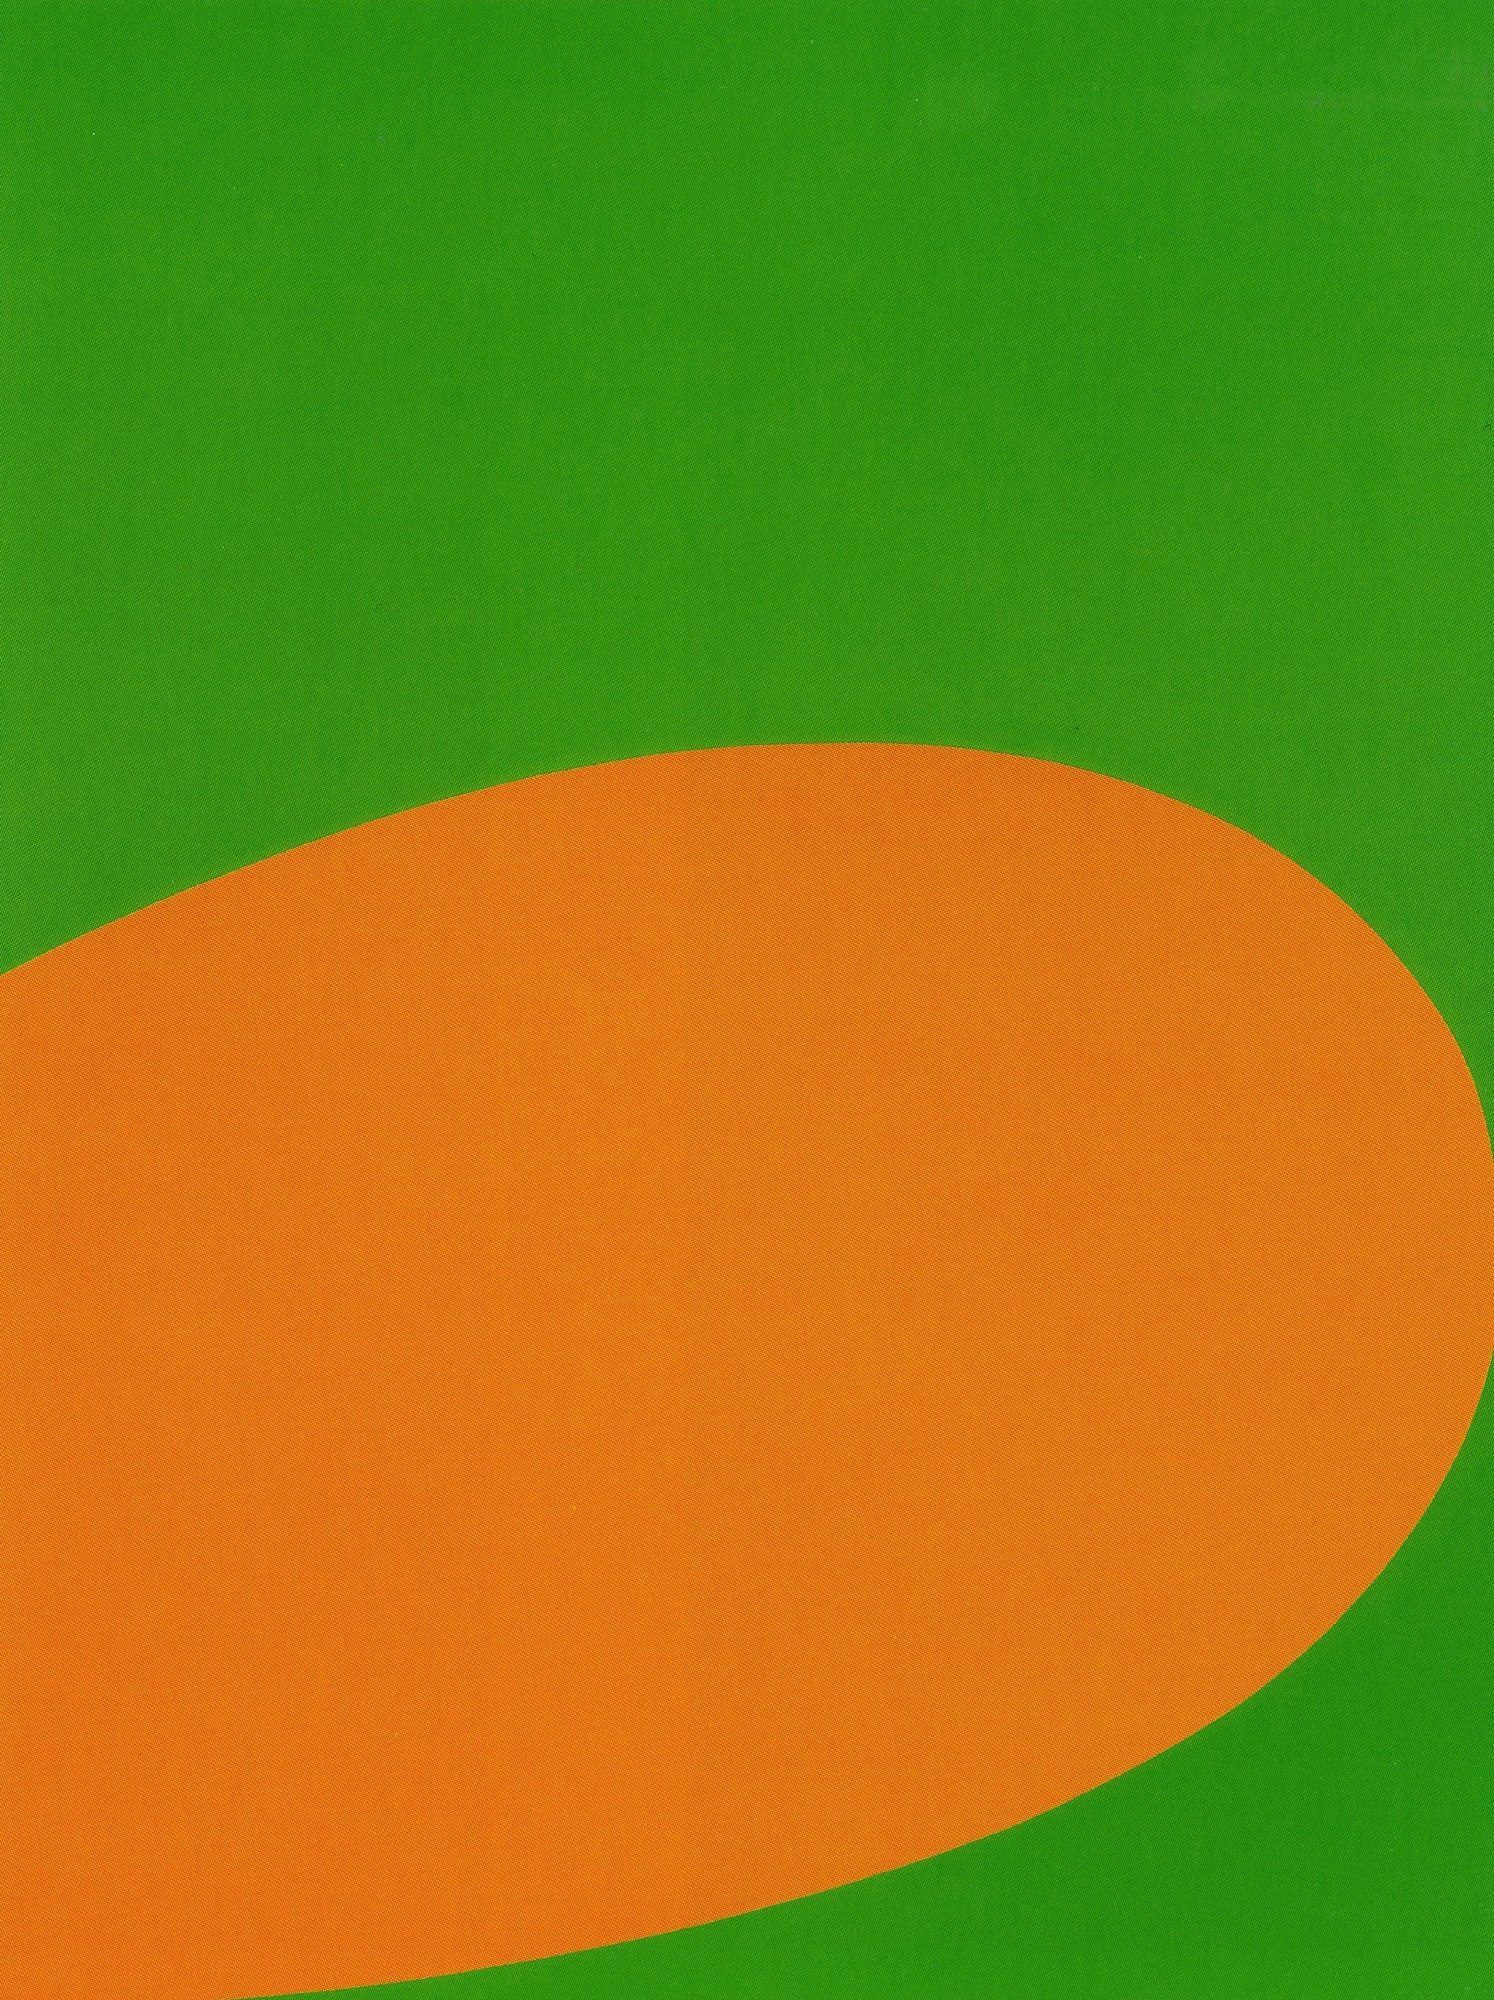 Ellsworth Kelly. Orange Green. 1964